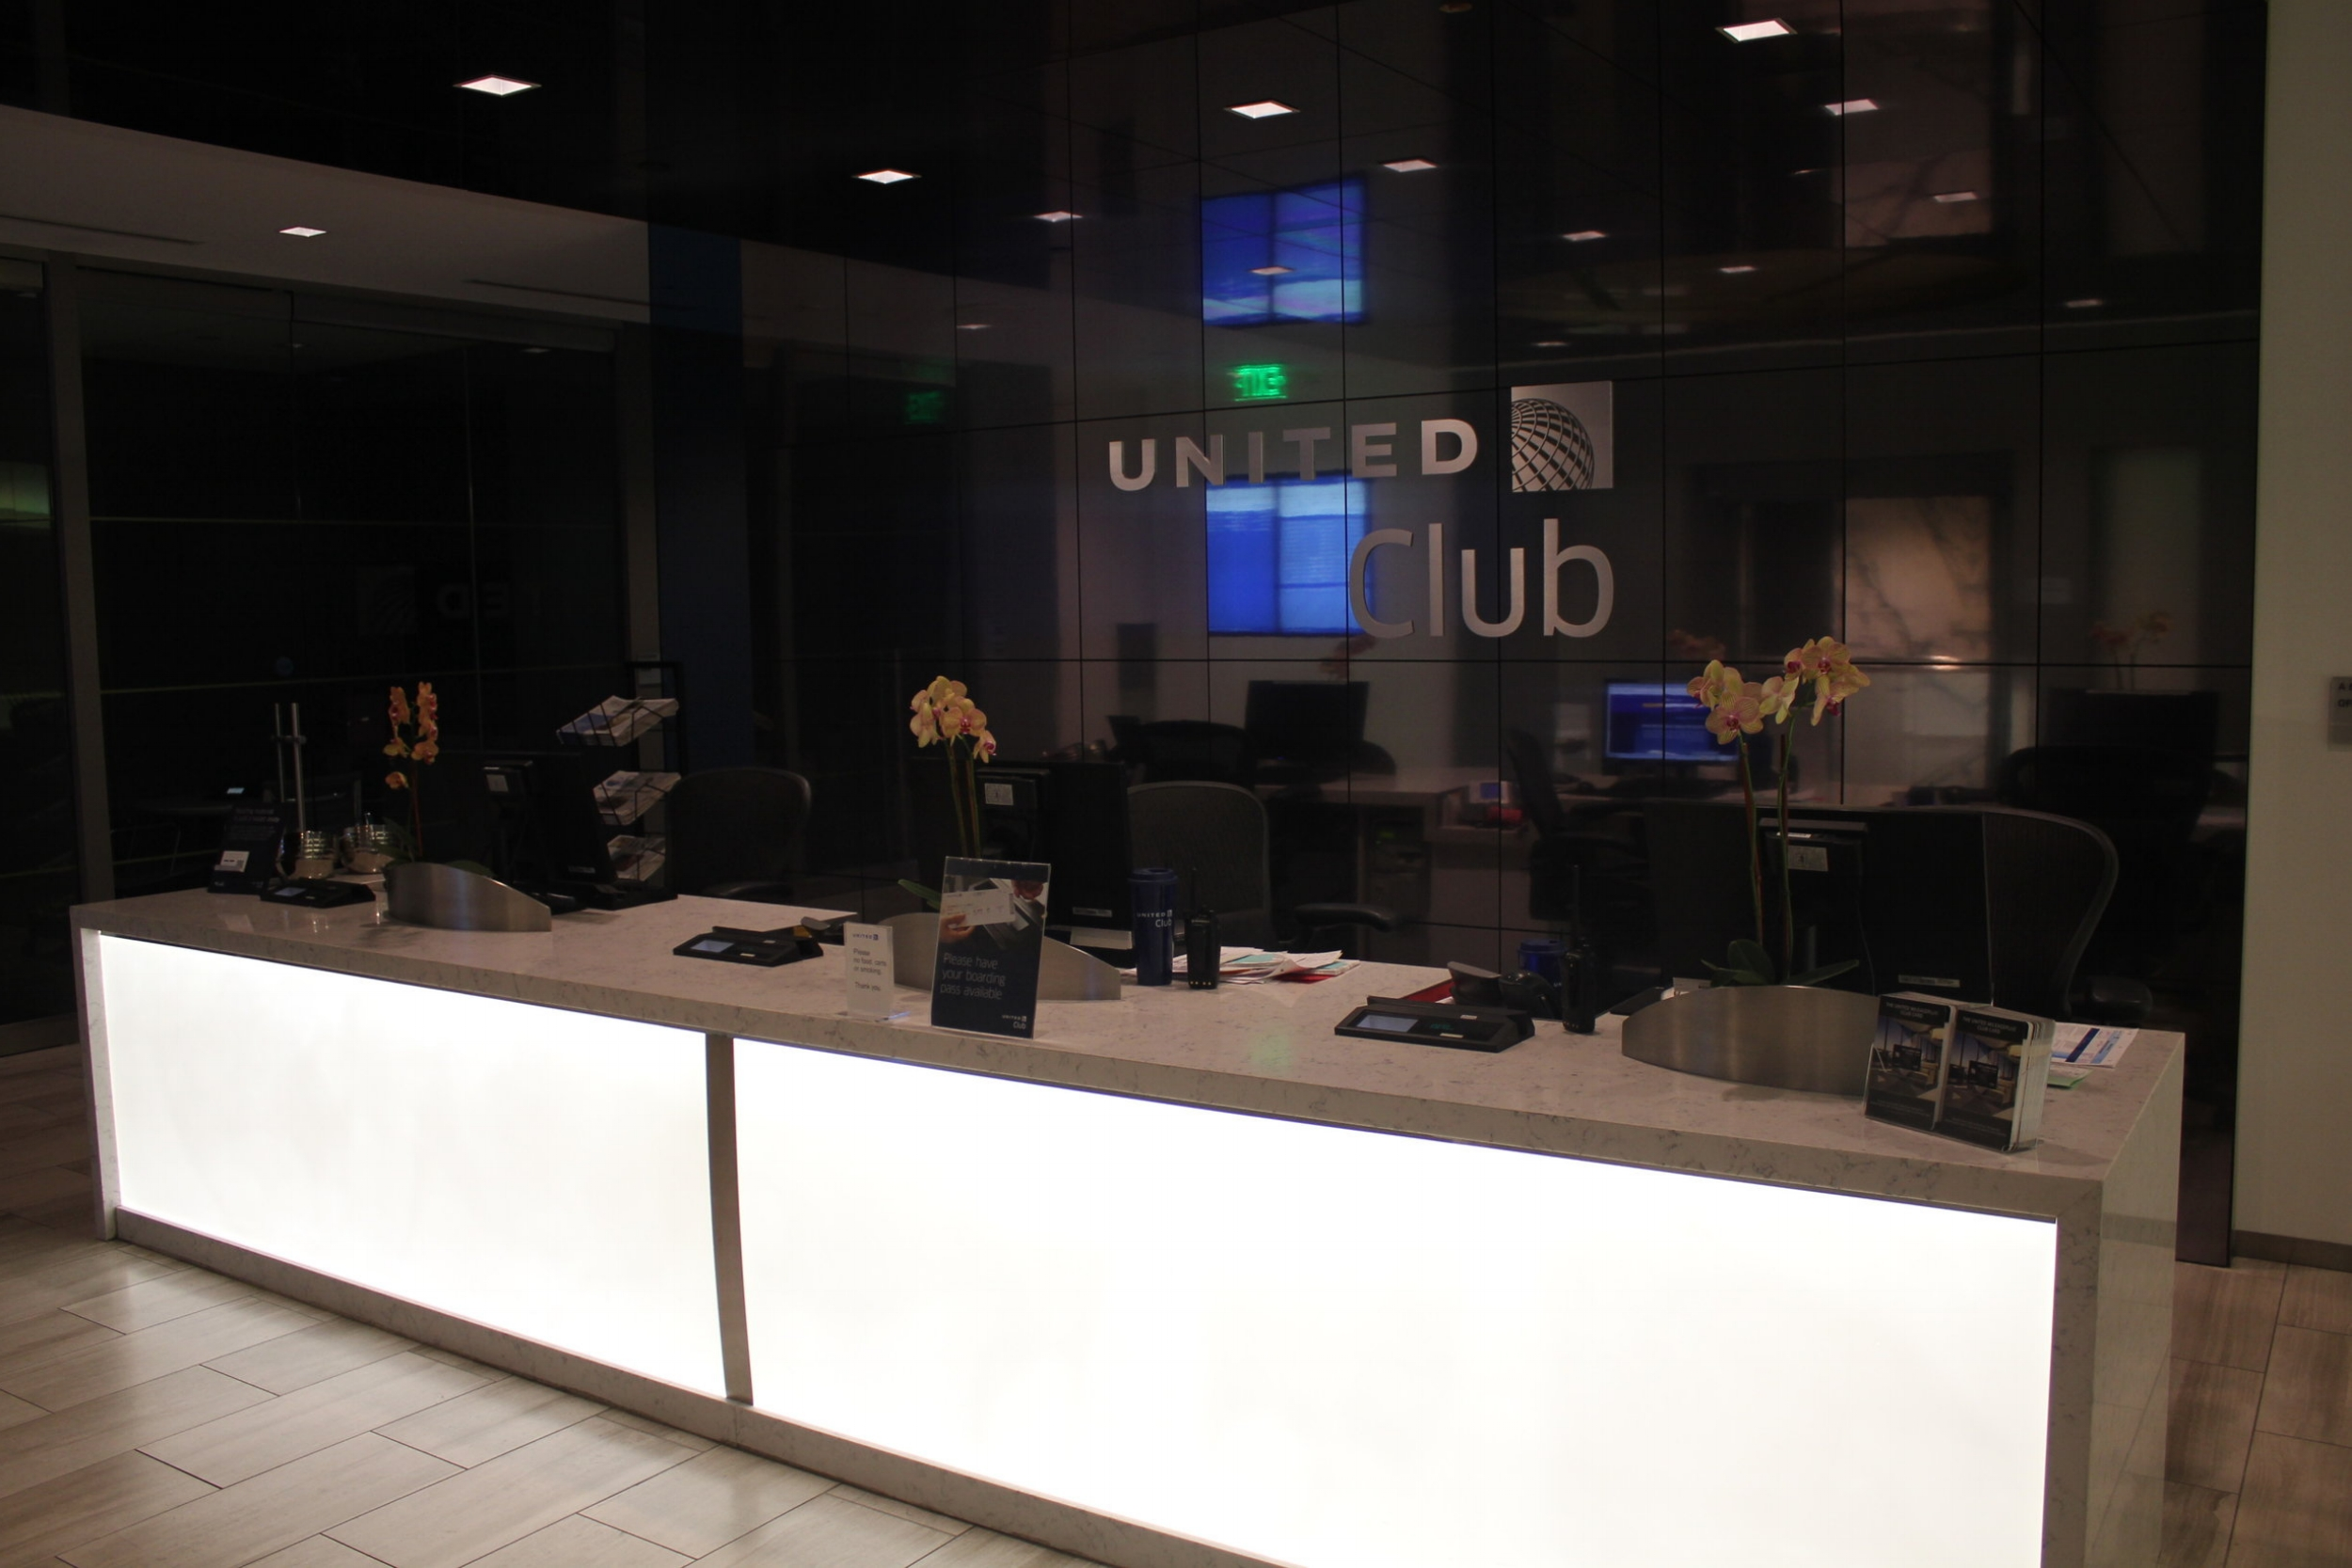 United Club Seattle – Front desk